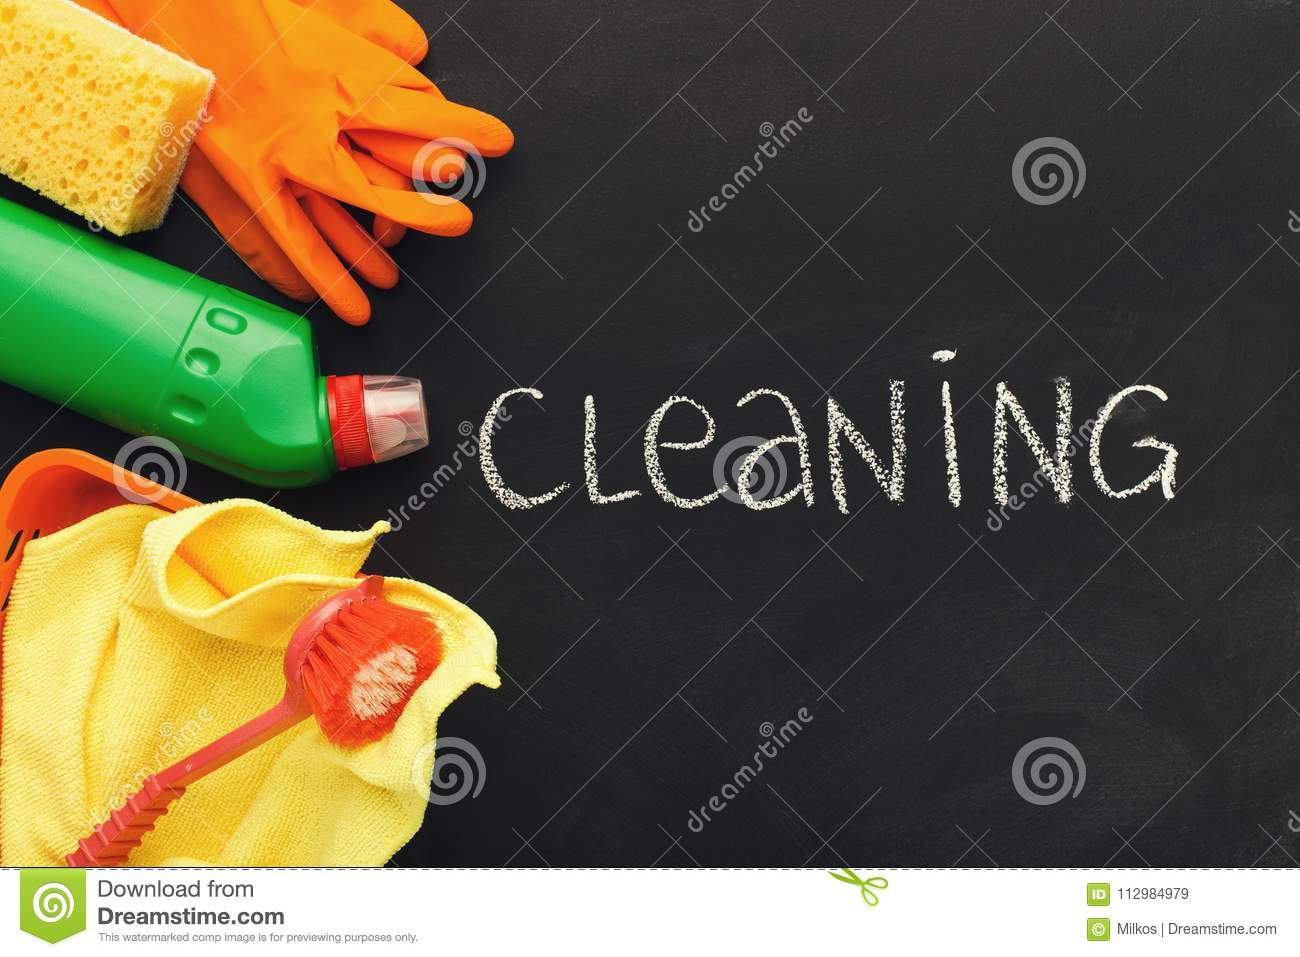 Cleaning supplies and products for home tidying up